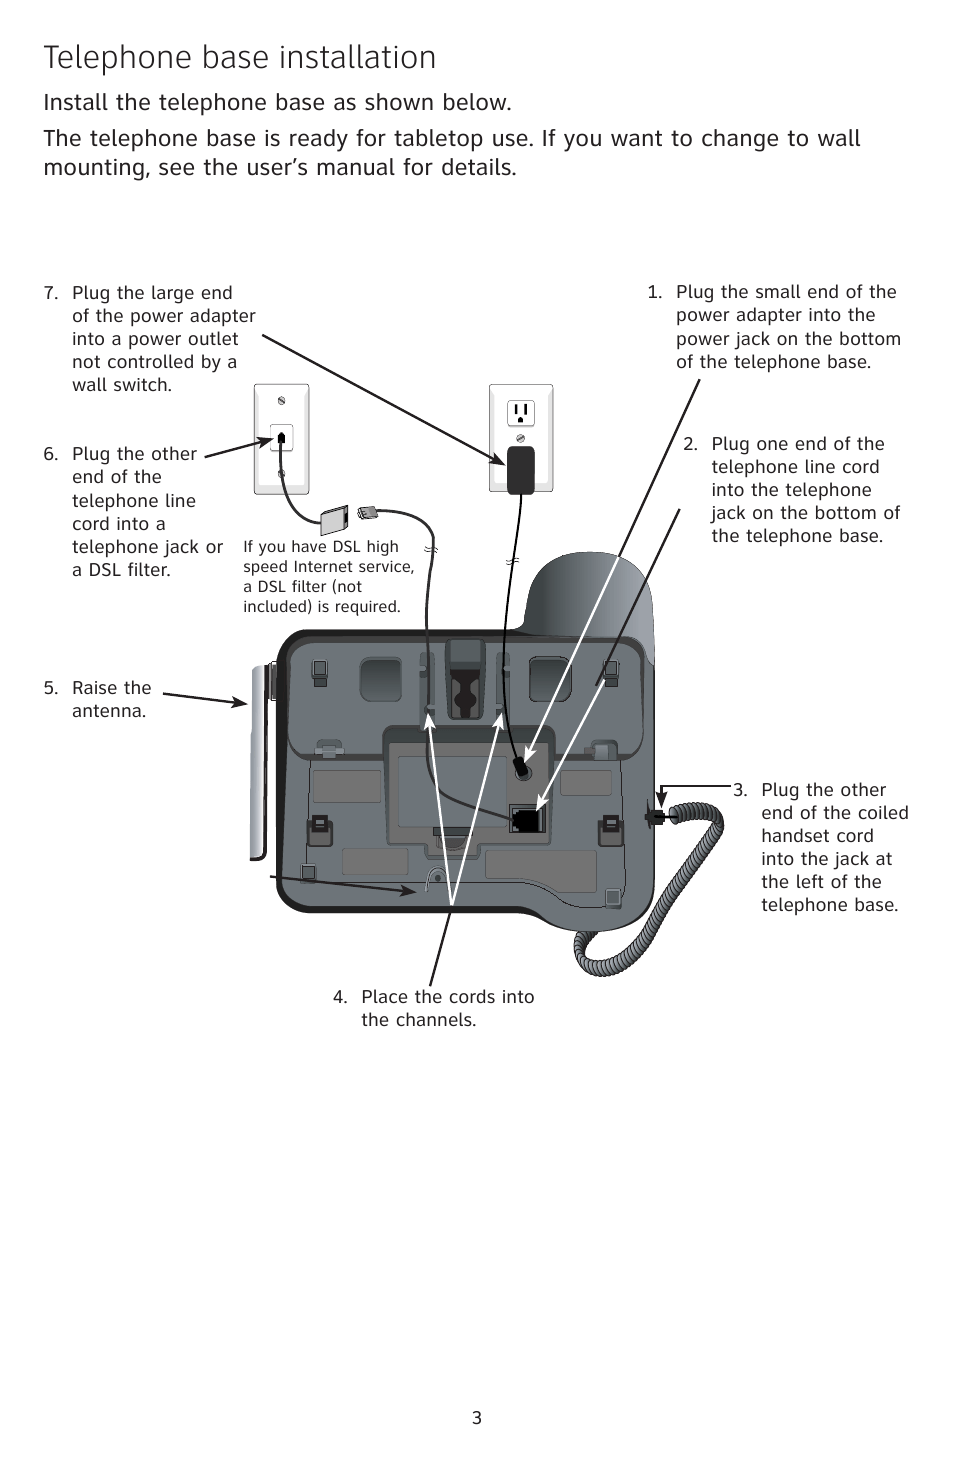 medium resolution of telephone base installation at t dect cl84209 user manual page 4 12